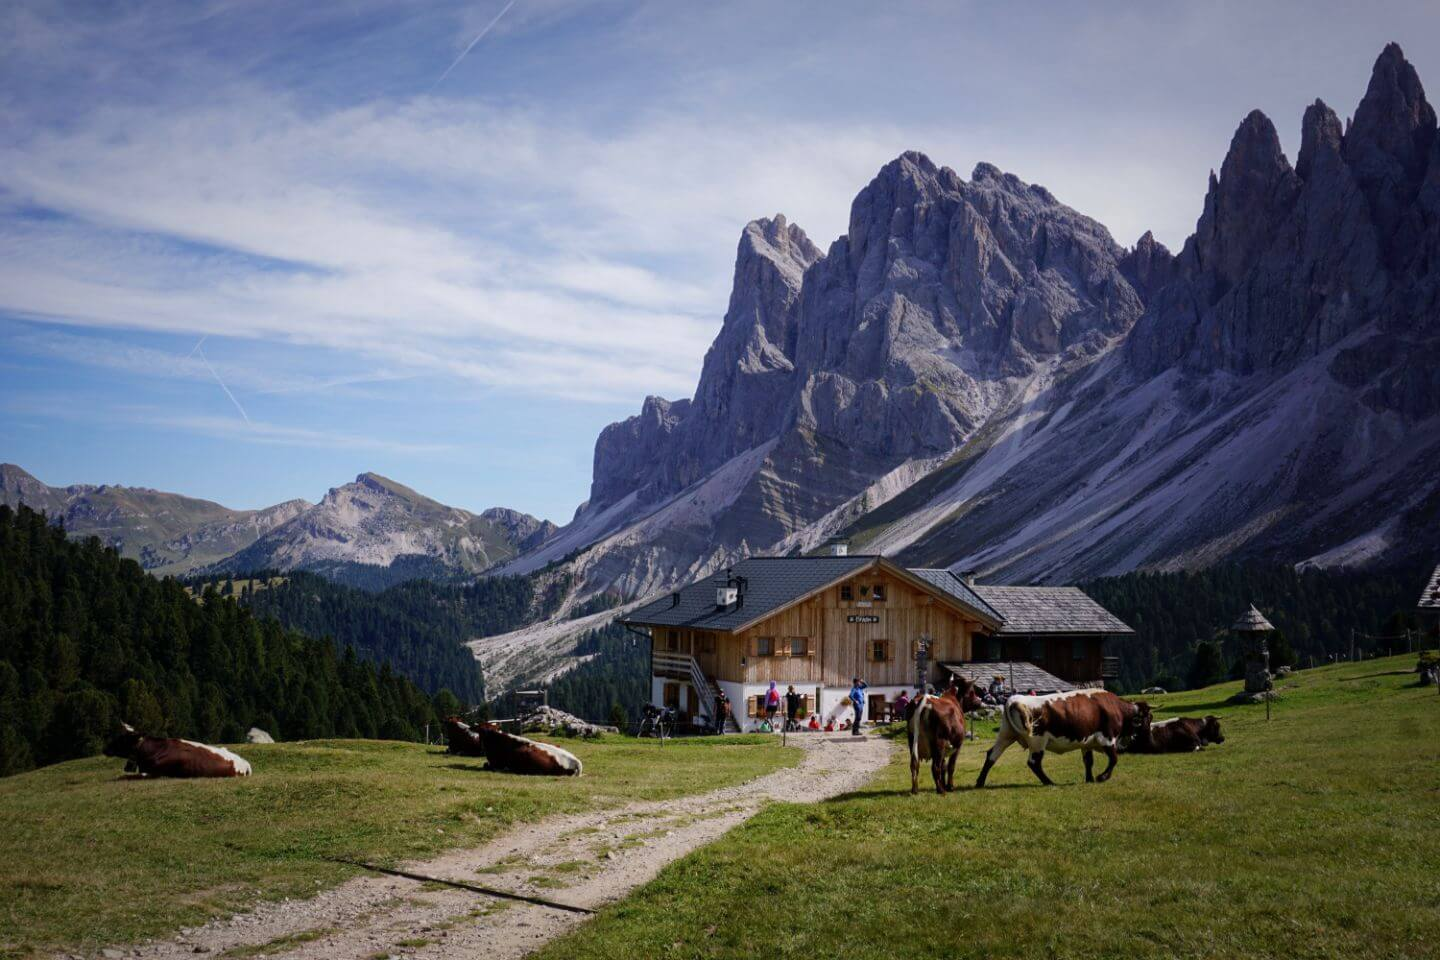 Best Day Hikes in the Dolomites, Italy: Resciesa to Malga Brogles to Seceda